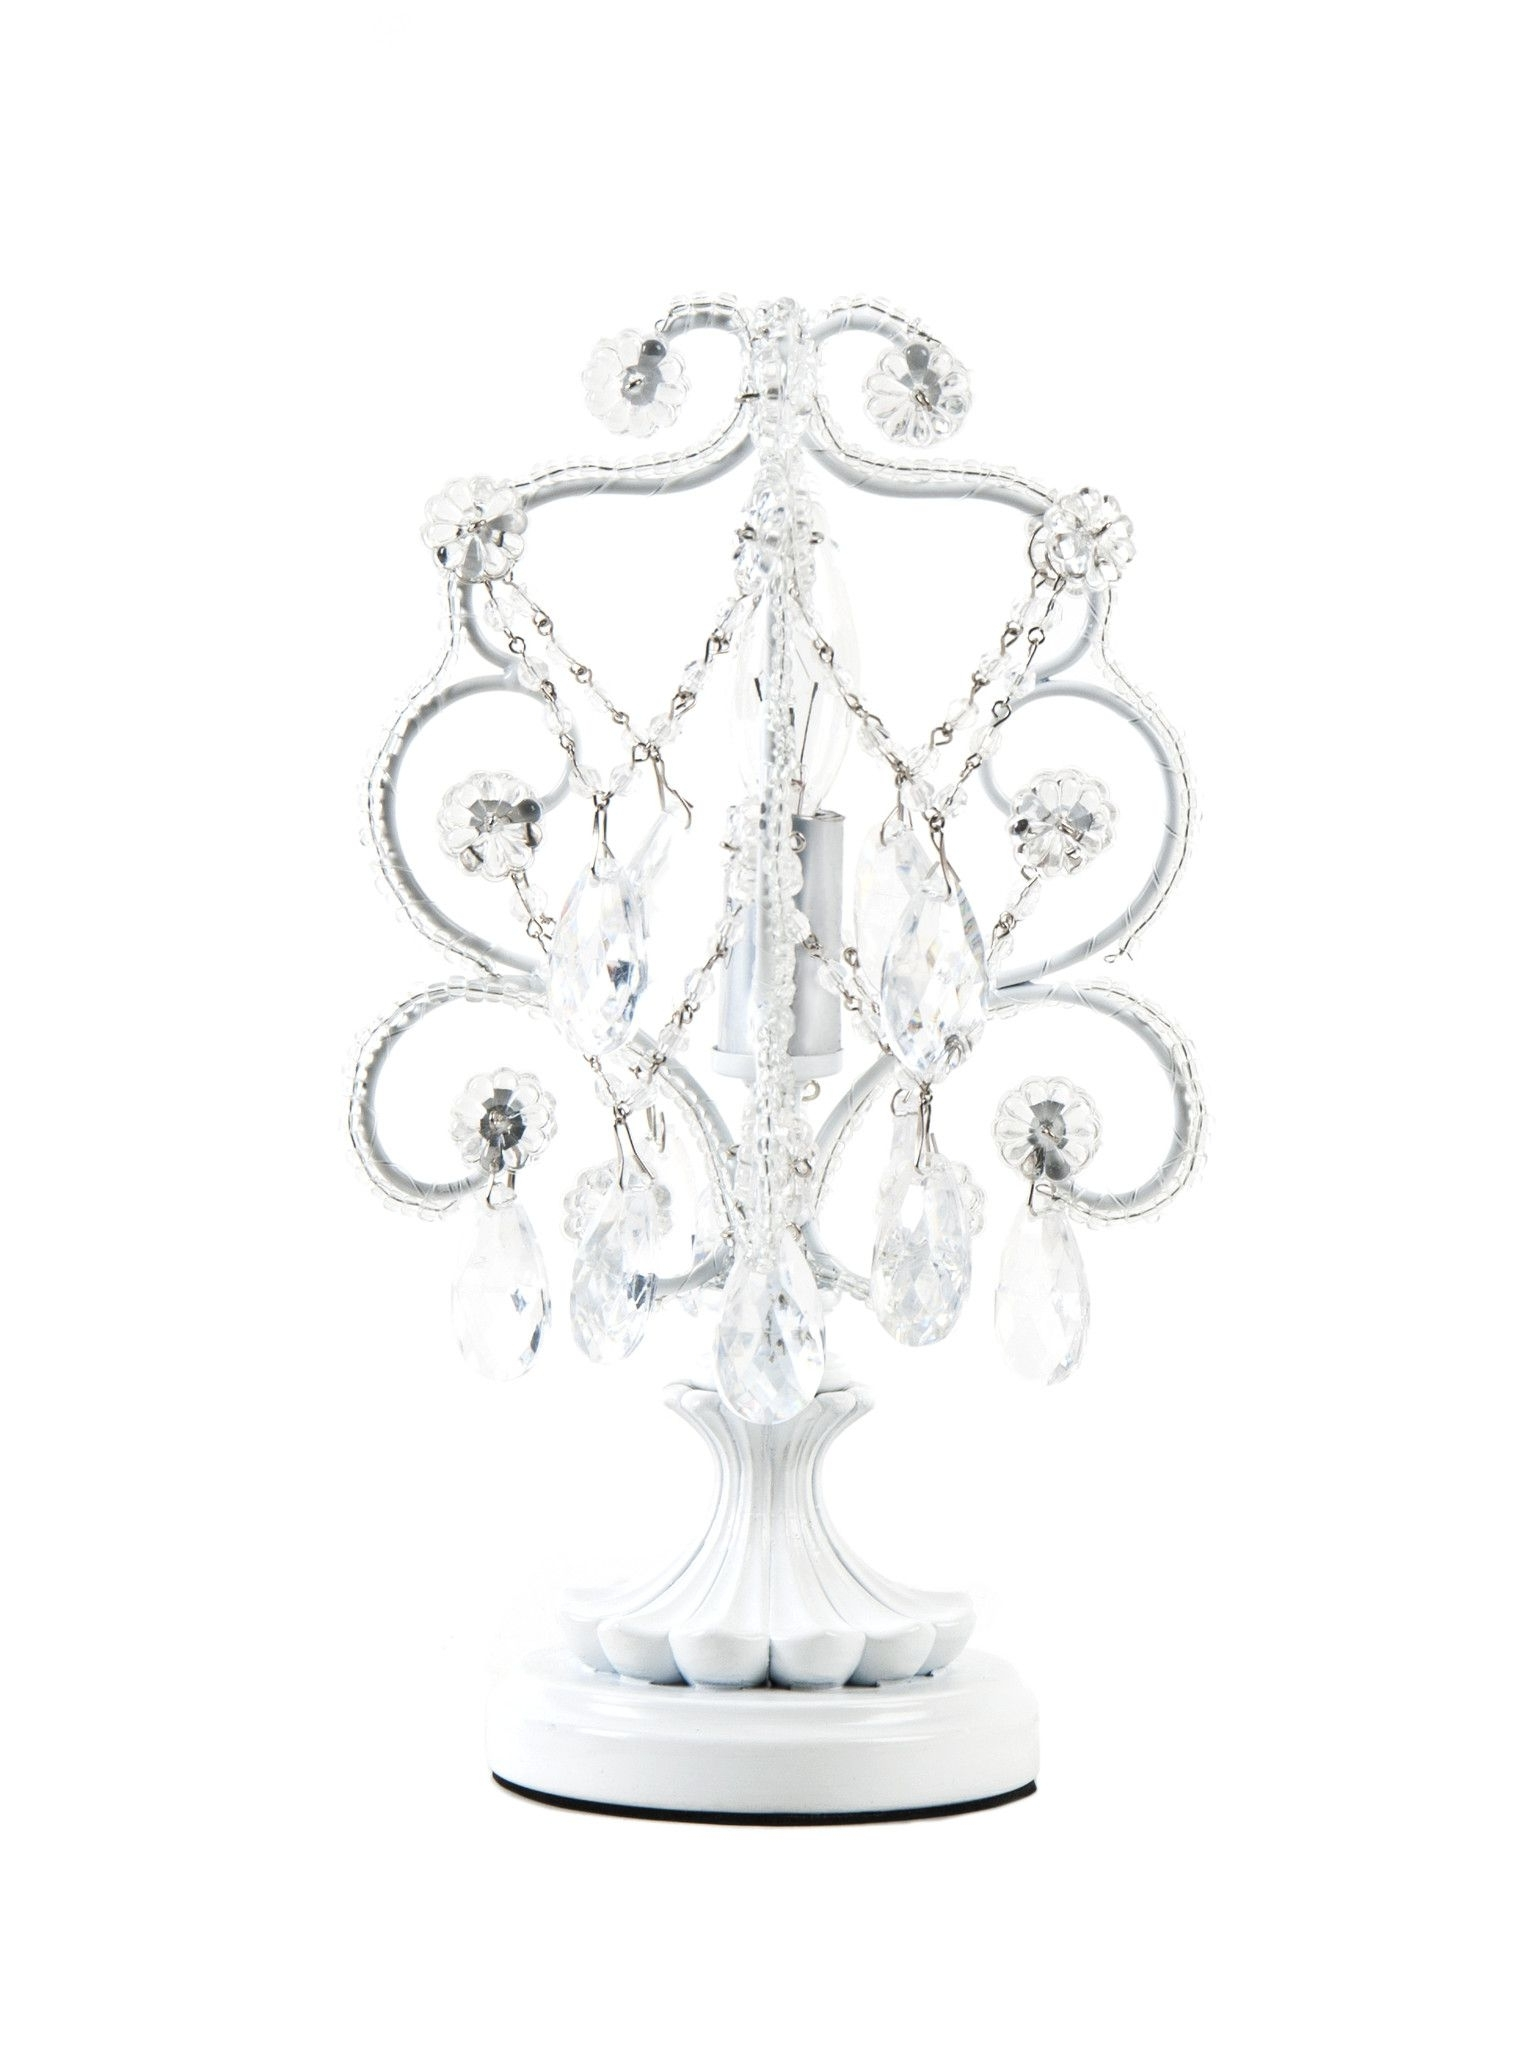 Mini Chandelier Table Lamps For Widely Used Mini Chandelier Table Lamp (View 7 of 20)